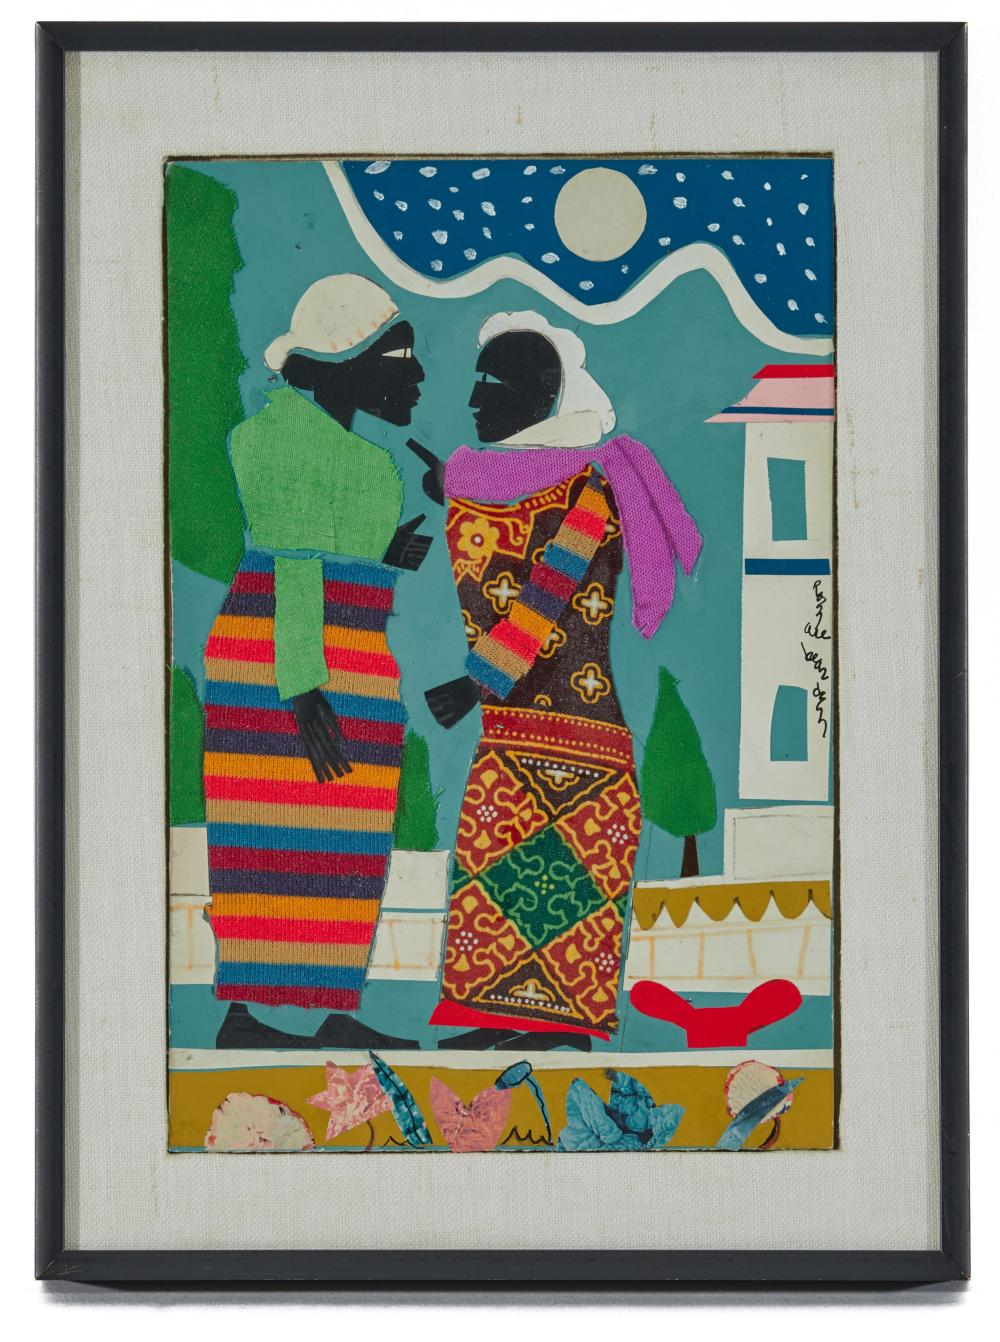 ROMARE HOWARD BEARDEN, (American, 1911-1988), In the Garden, 1978, acrylic, cloth, and paper collage on paper affixed to board, sight: 10 1/4 x 6 7/8 in., frame: 13 x 9 3/4 in.